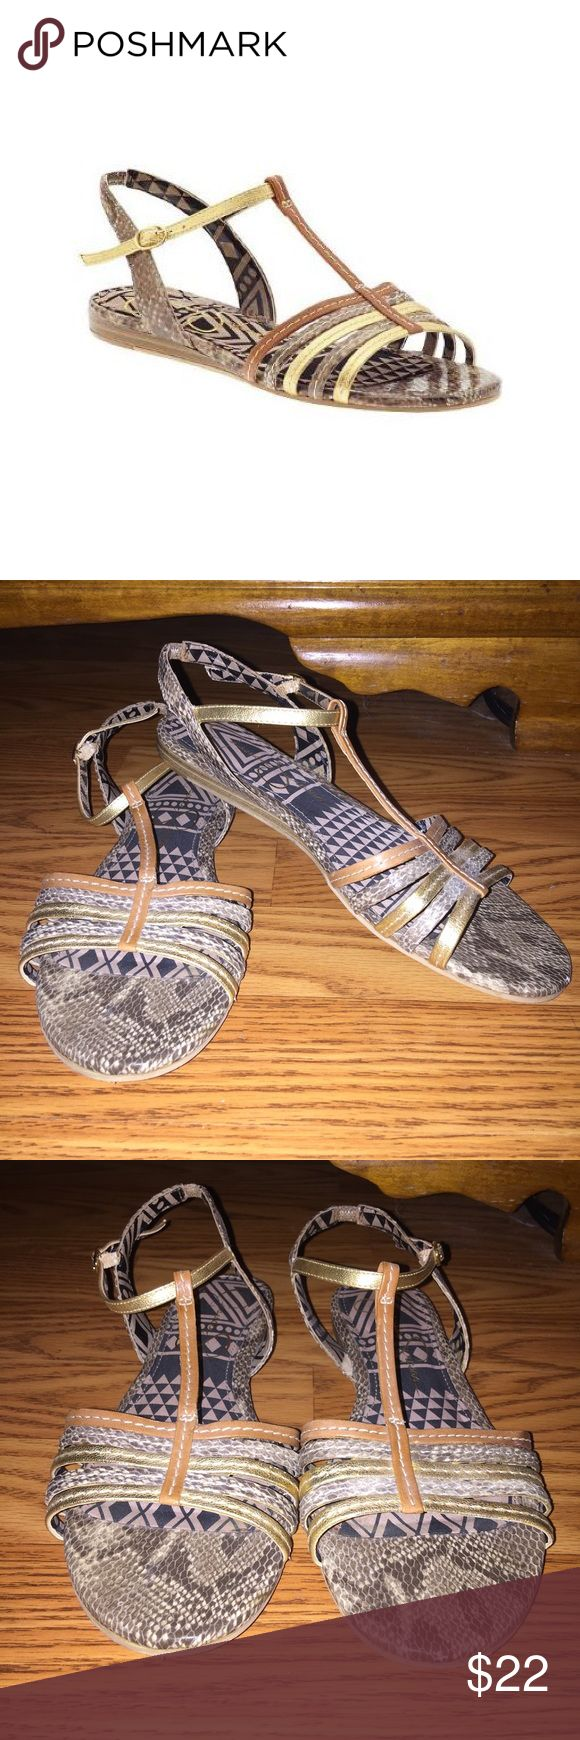 """Jessica Simpson Flat Strappy Sandals 🌼Multicolor metallic snakeskin, Leather upper                                                                                     🌼Great used condition, only worn a few times                                                          *Please ask any questions you may have before purchasing* 10% OFF 2+ ITEMS - USE THE """"ADD TO BUNDLE"""" FEATURE !!! Jessica Simpson Shoes Sandals"""